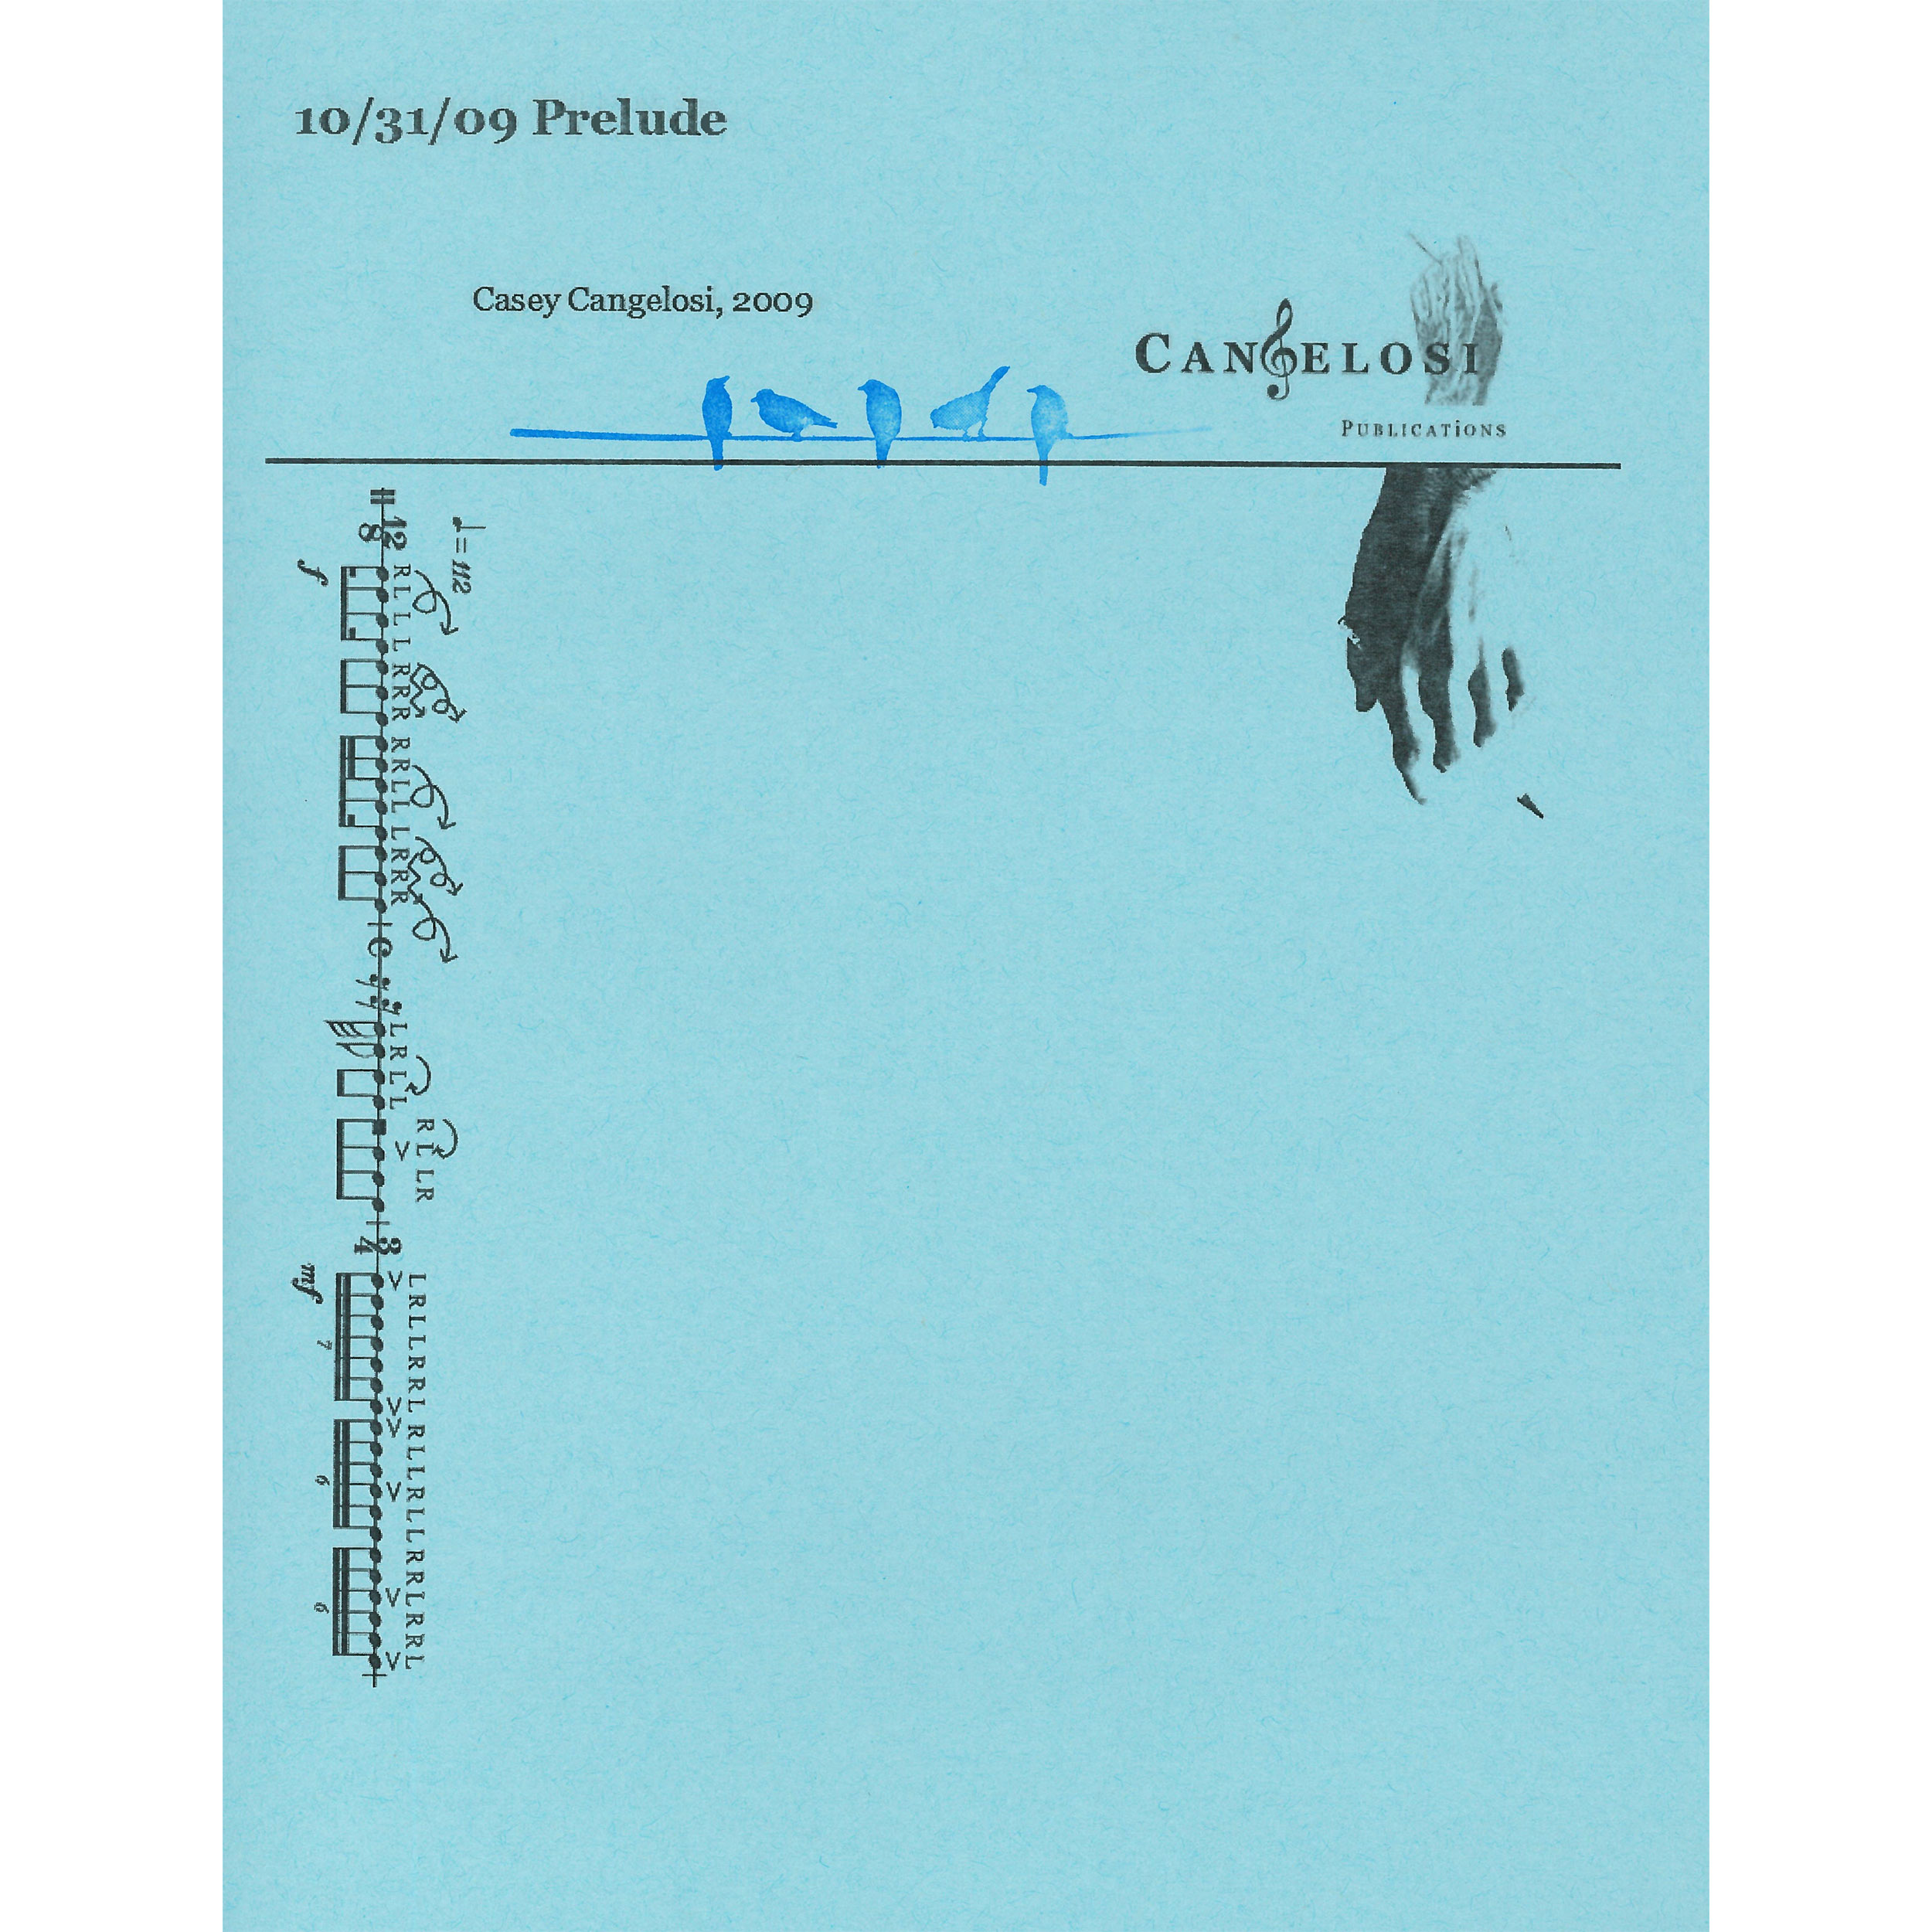 10/31/09 Prelude by Casey Cangelosi